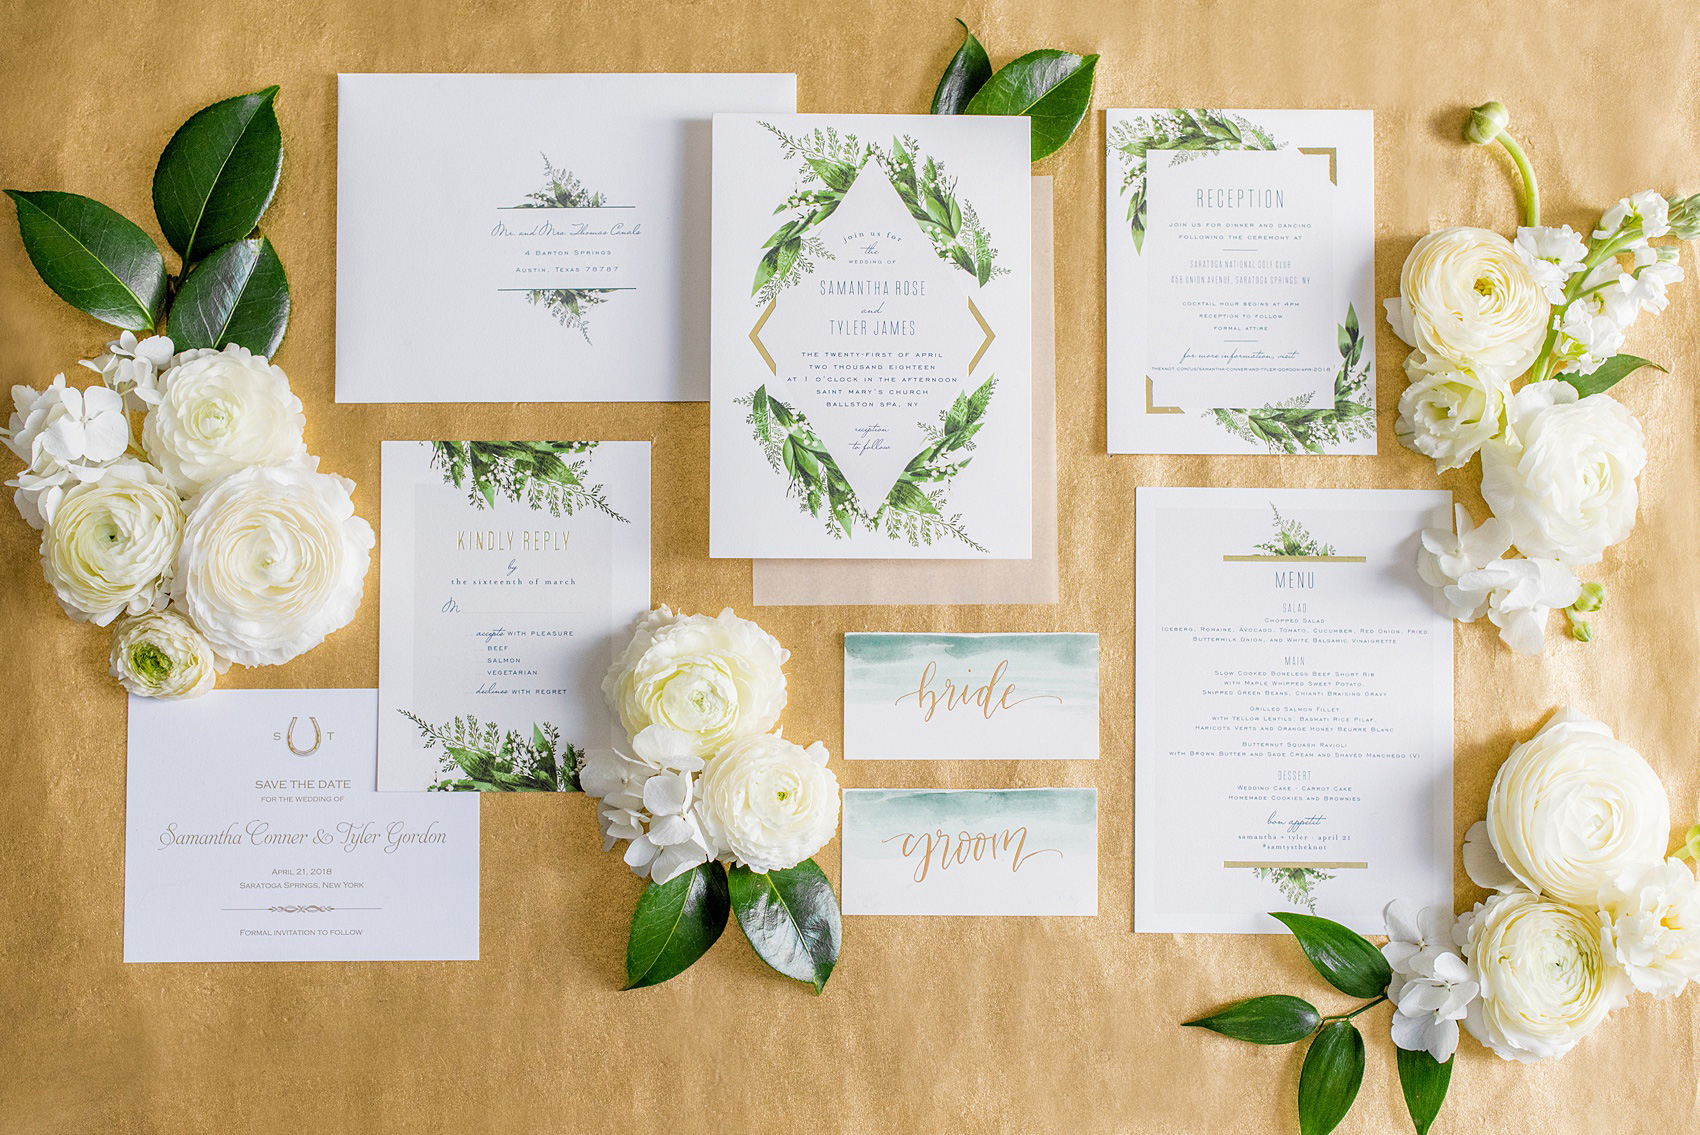 Saratoga springs ny destination wedding photos by mikkel paige photo of a green invitation in a flower lay flat picture by mikkel paige photography for mightylinksfo